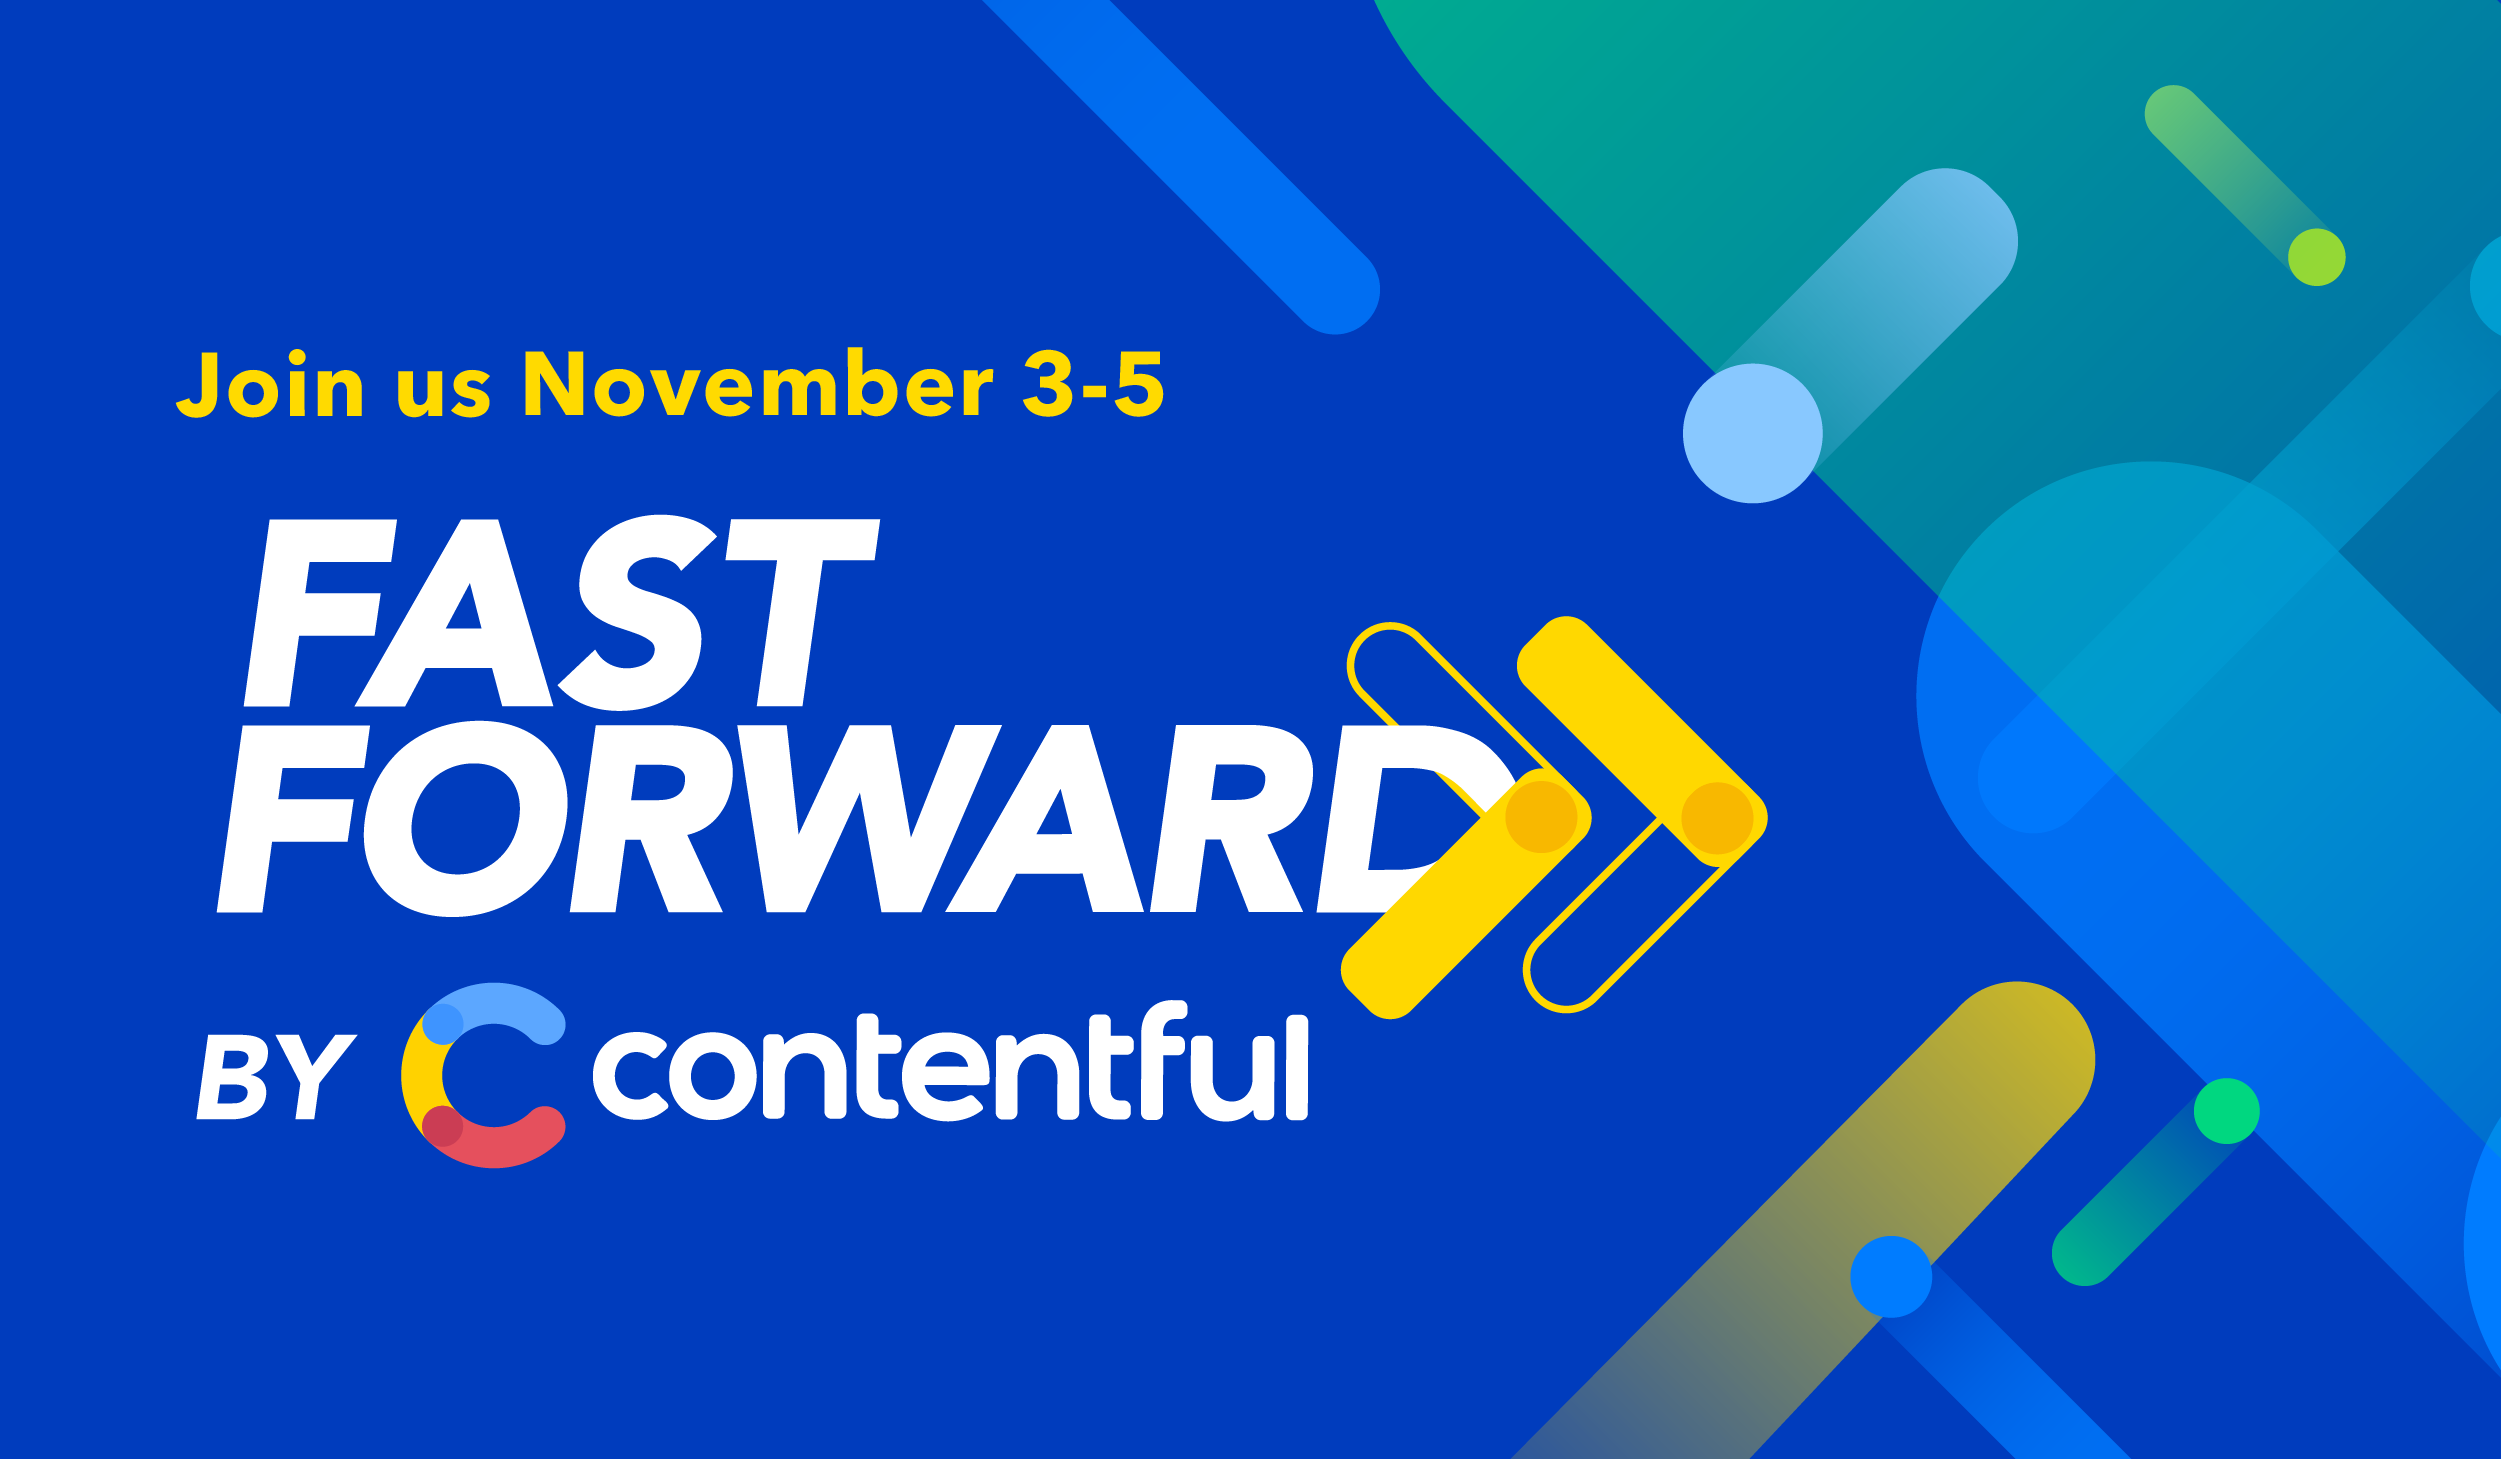 """An image with blue, yellow and green diagonal stripes, with the title """"FAST FORWARD by CONTENTFUL"""" and the subtitle """"Join us November 3-5""""."""